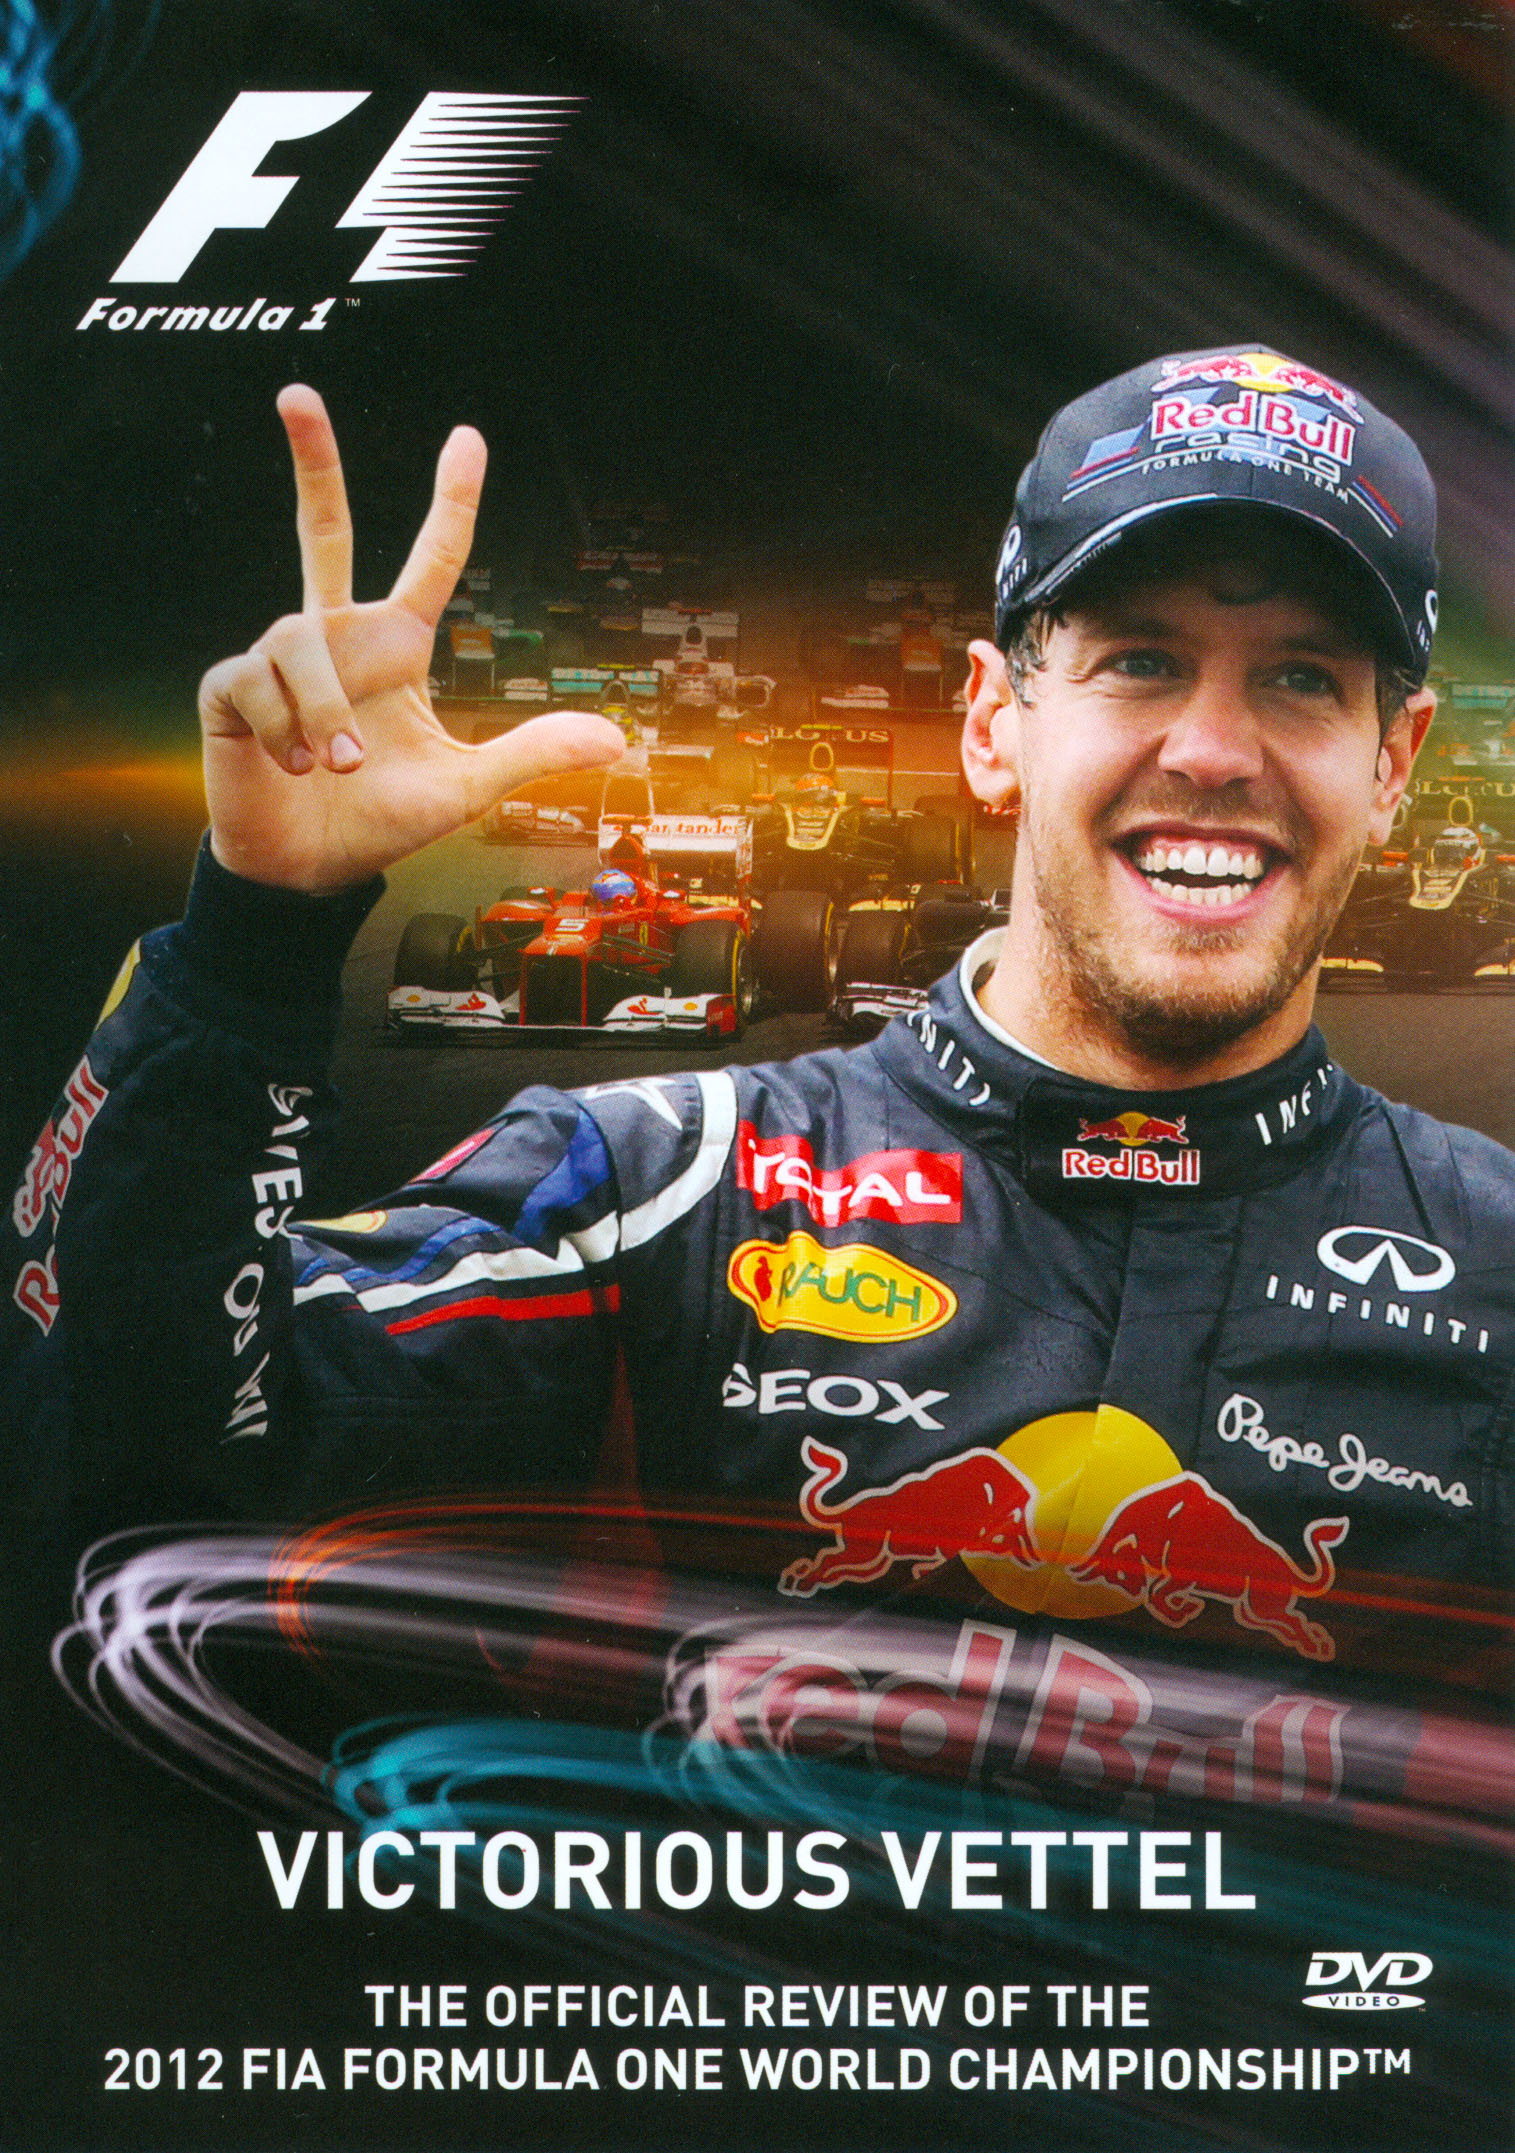 The Official Review of the 2012 FIA Formula One World Championship